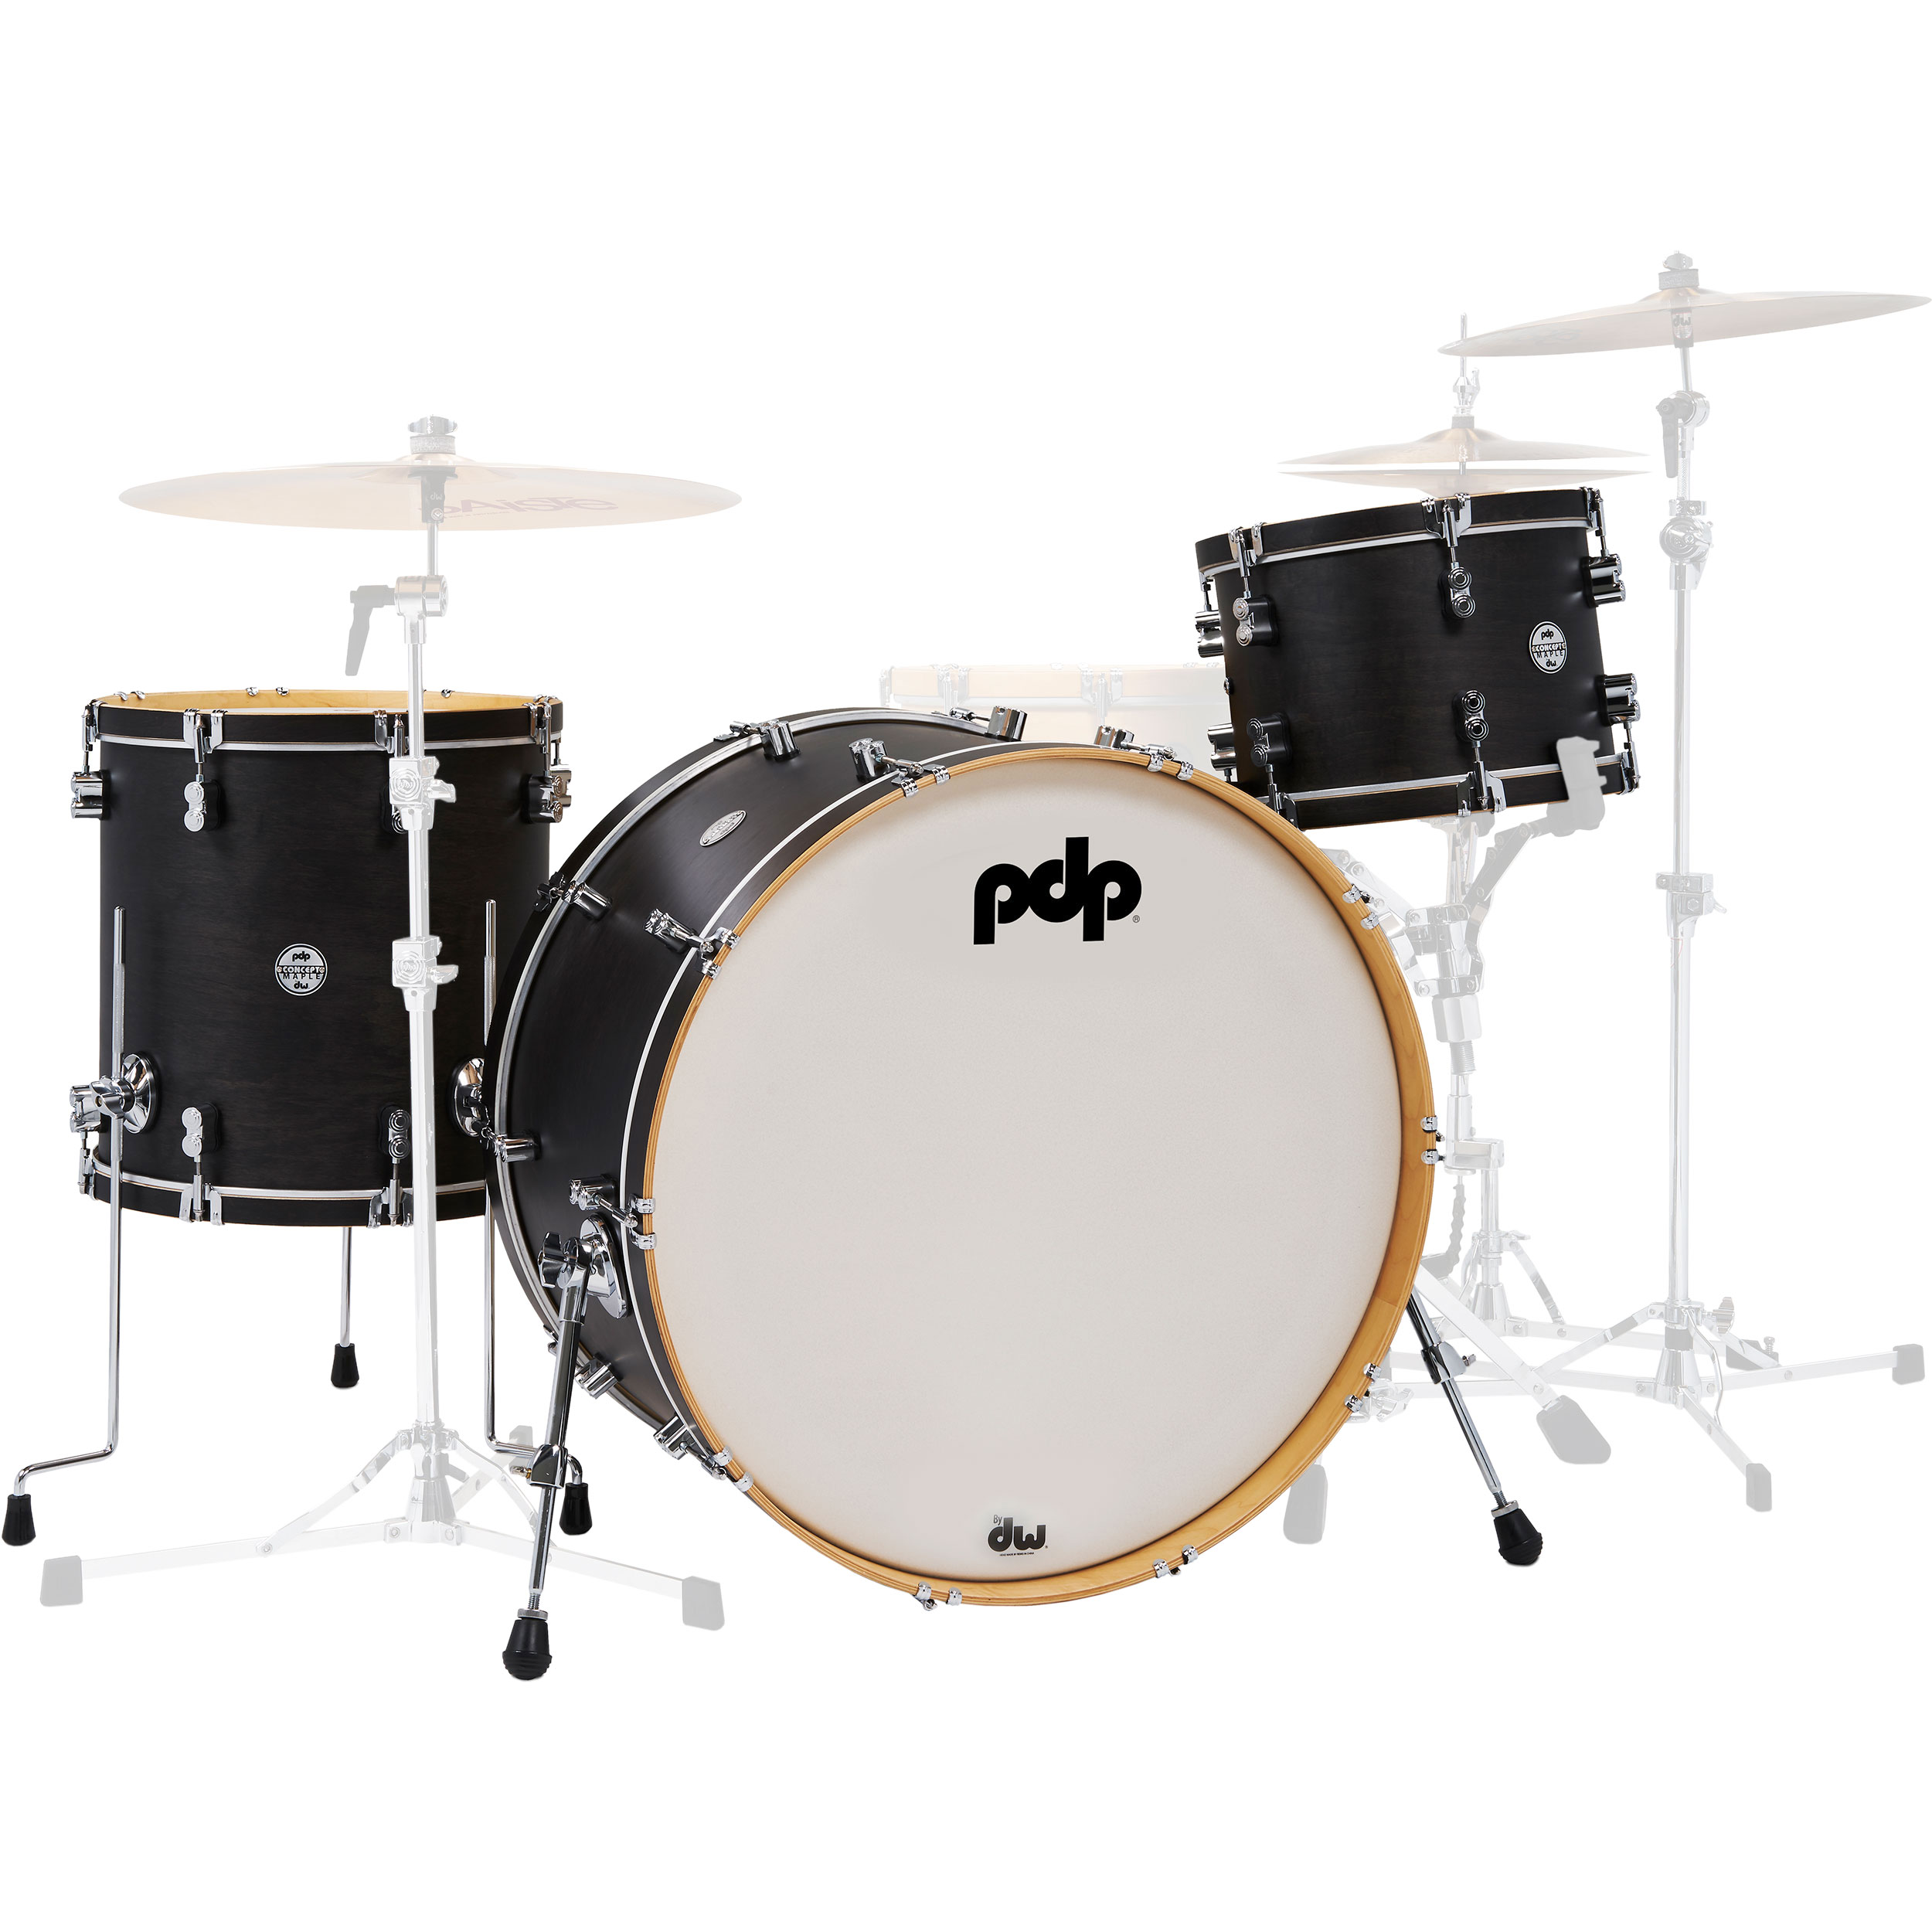 """PDP Concept Maple Classic Drum Set Shell Pack (26"""" Bass, 13/16"""" Toms)"""